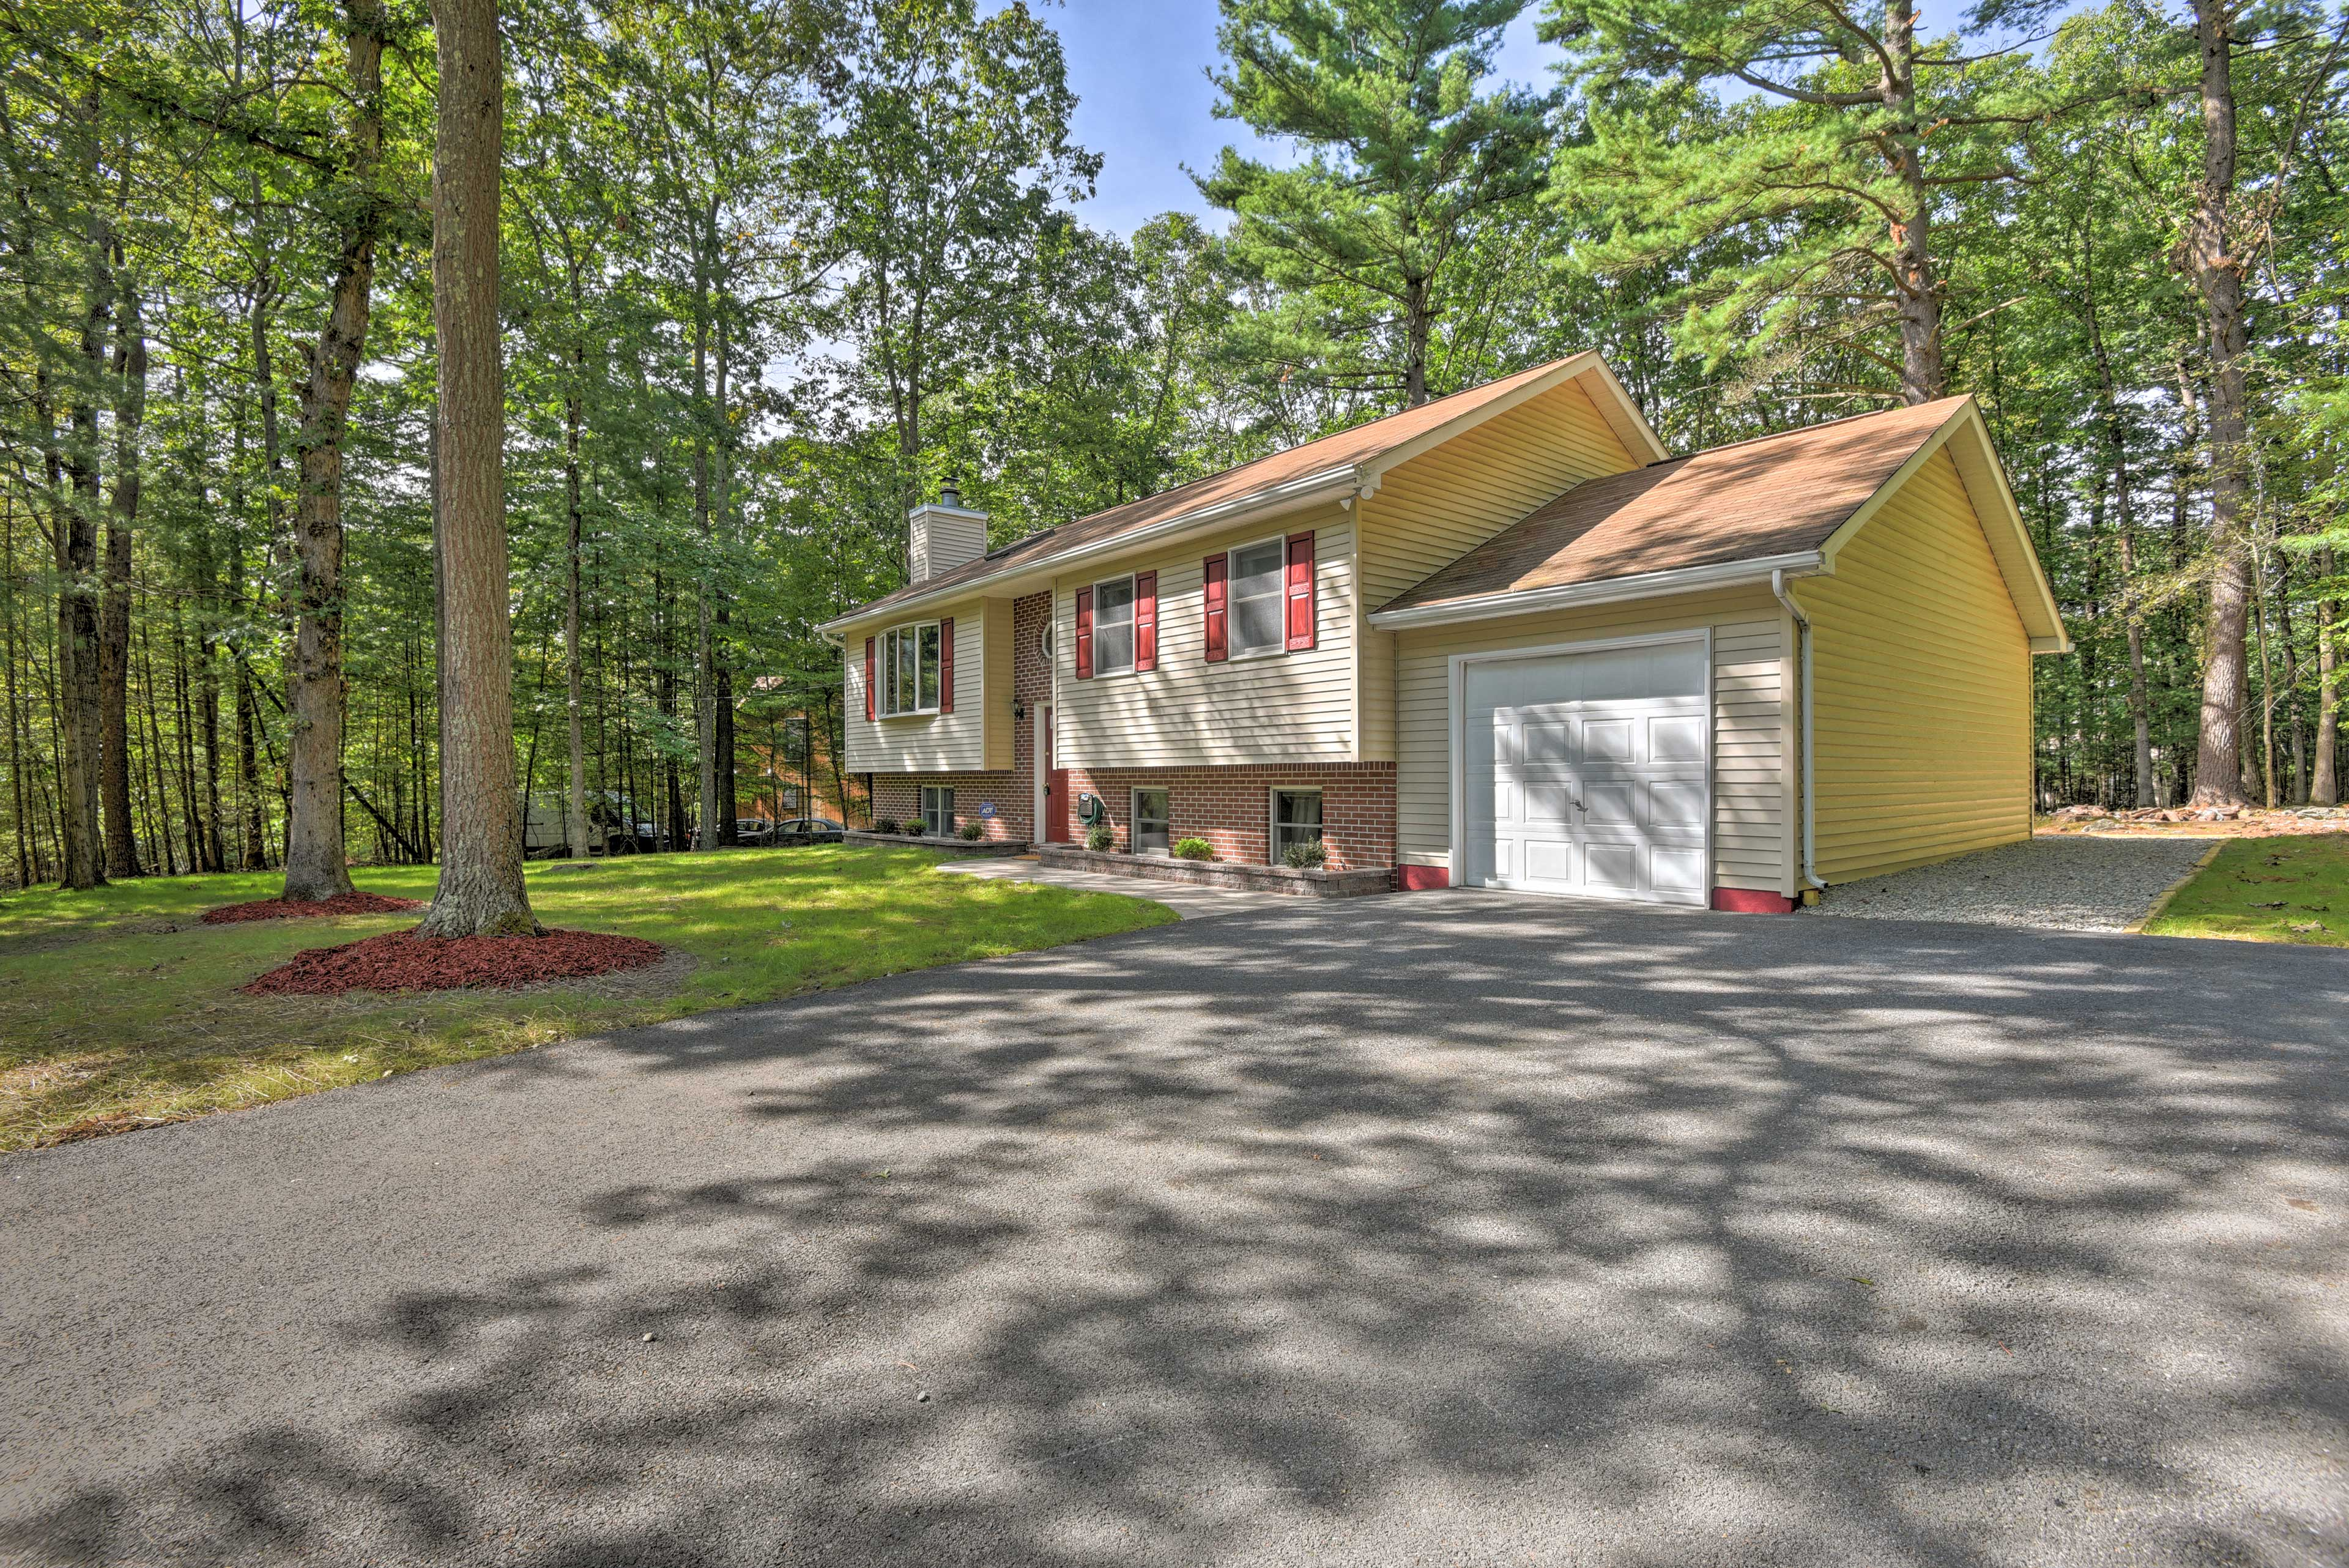 Explore the Poconos while staying at this 4-bedroom, 2-bathroom vacation rental.